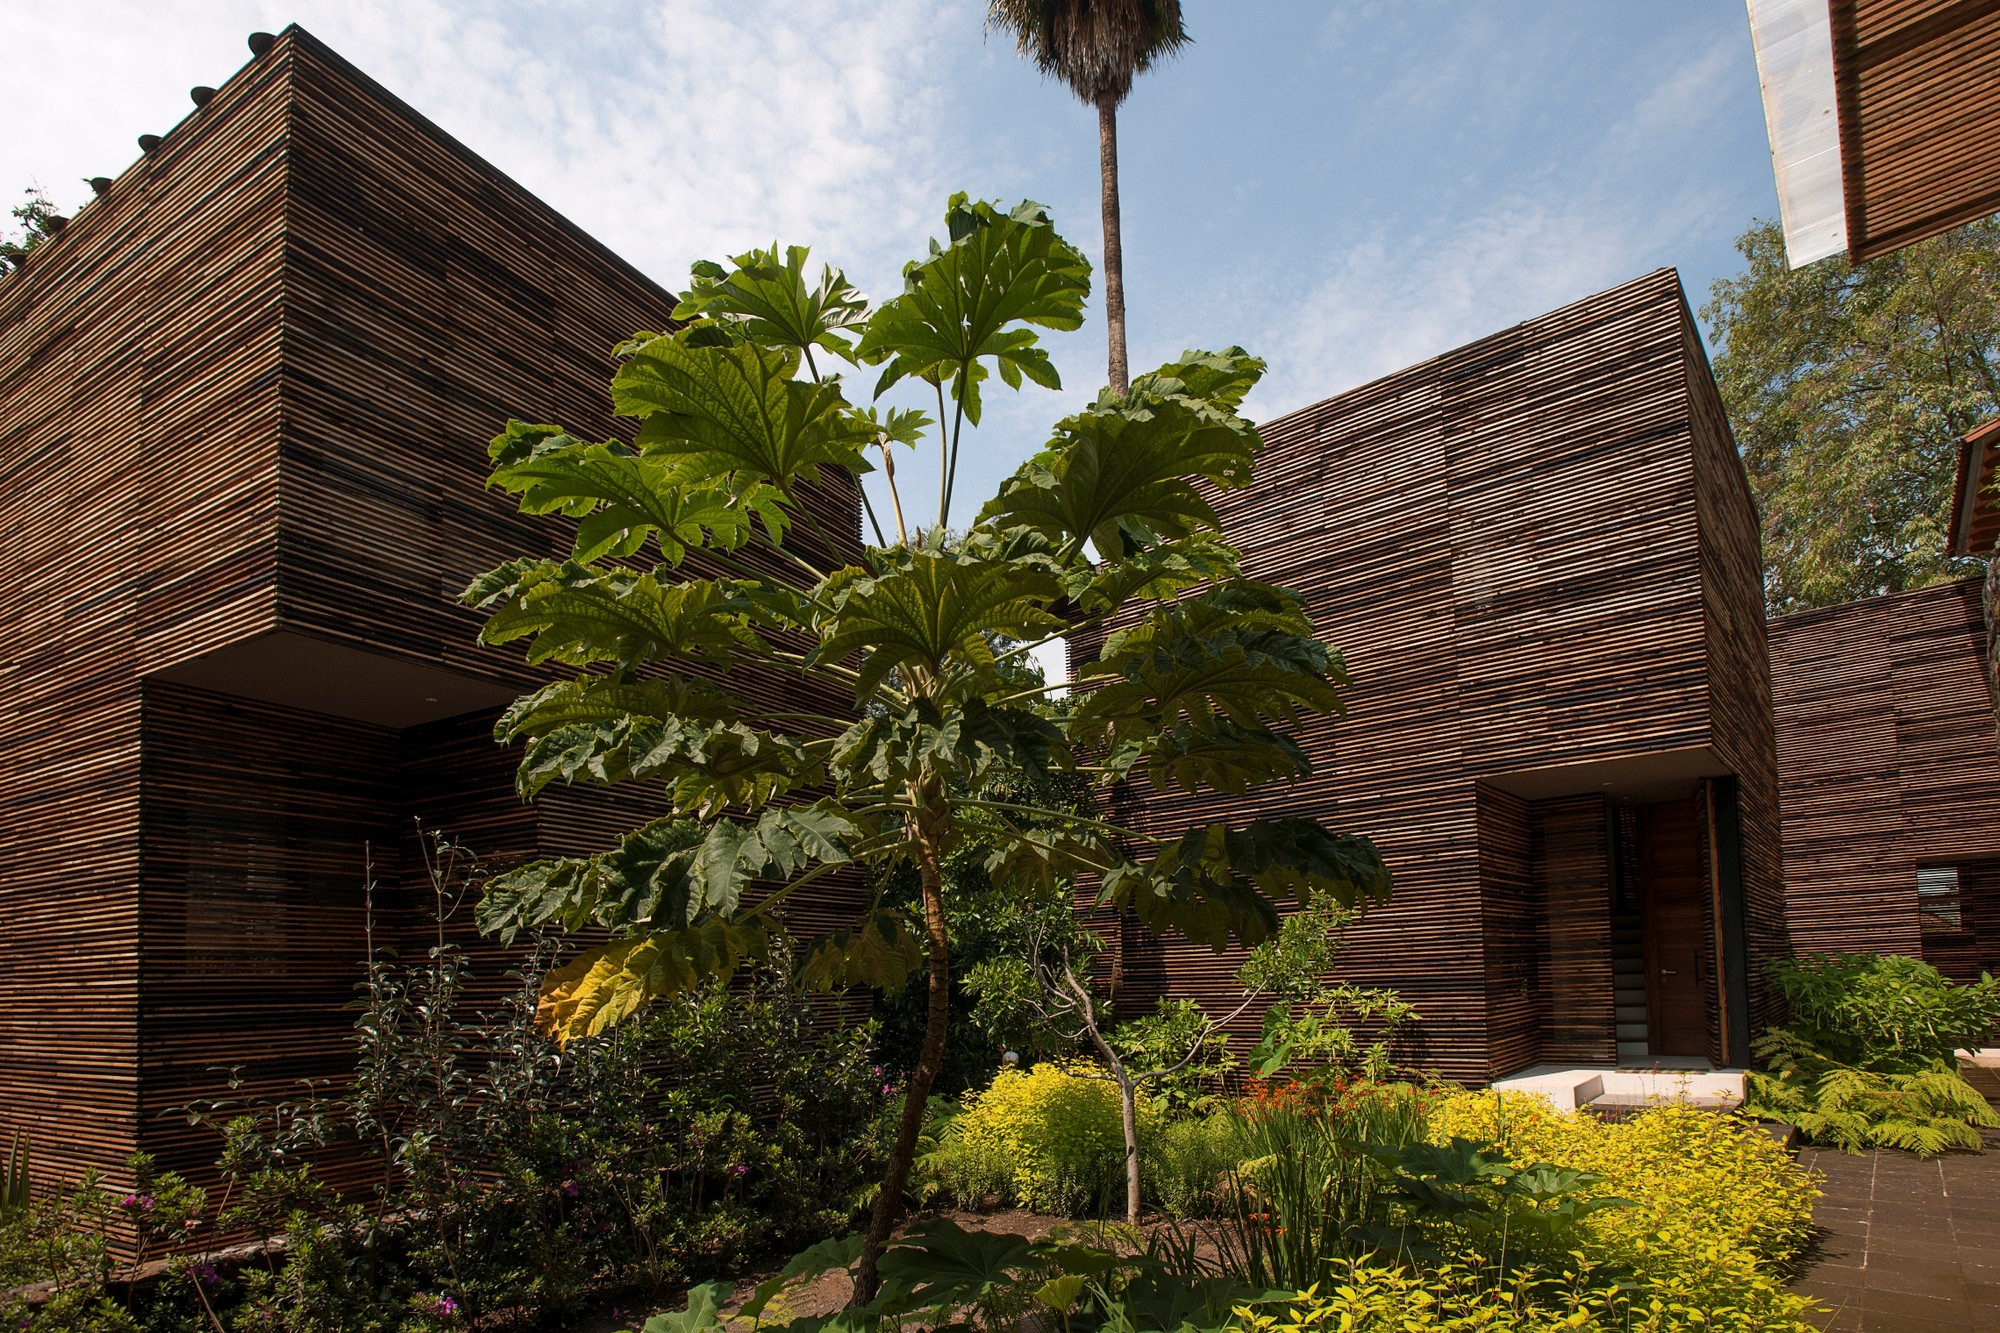 Gallery of chipicas town houses alejandro sanchez garcia for Alejandro sanchez garcia arquitectos